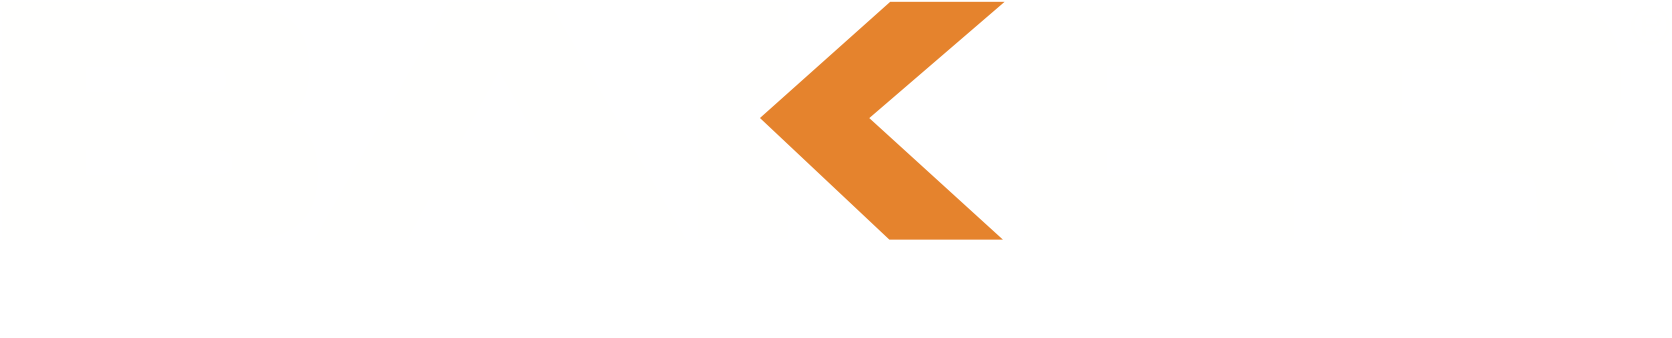 Baker construction logo